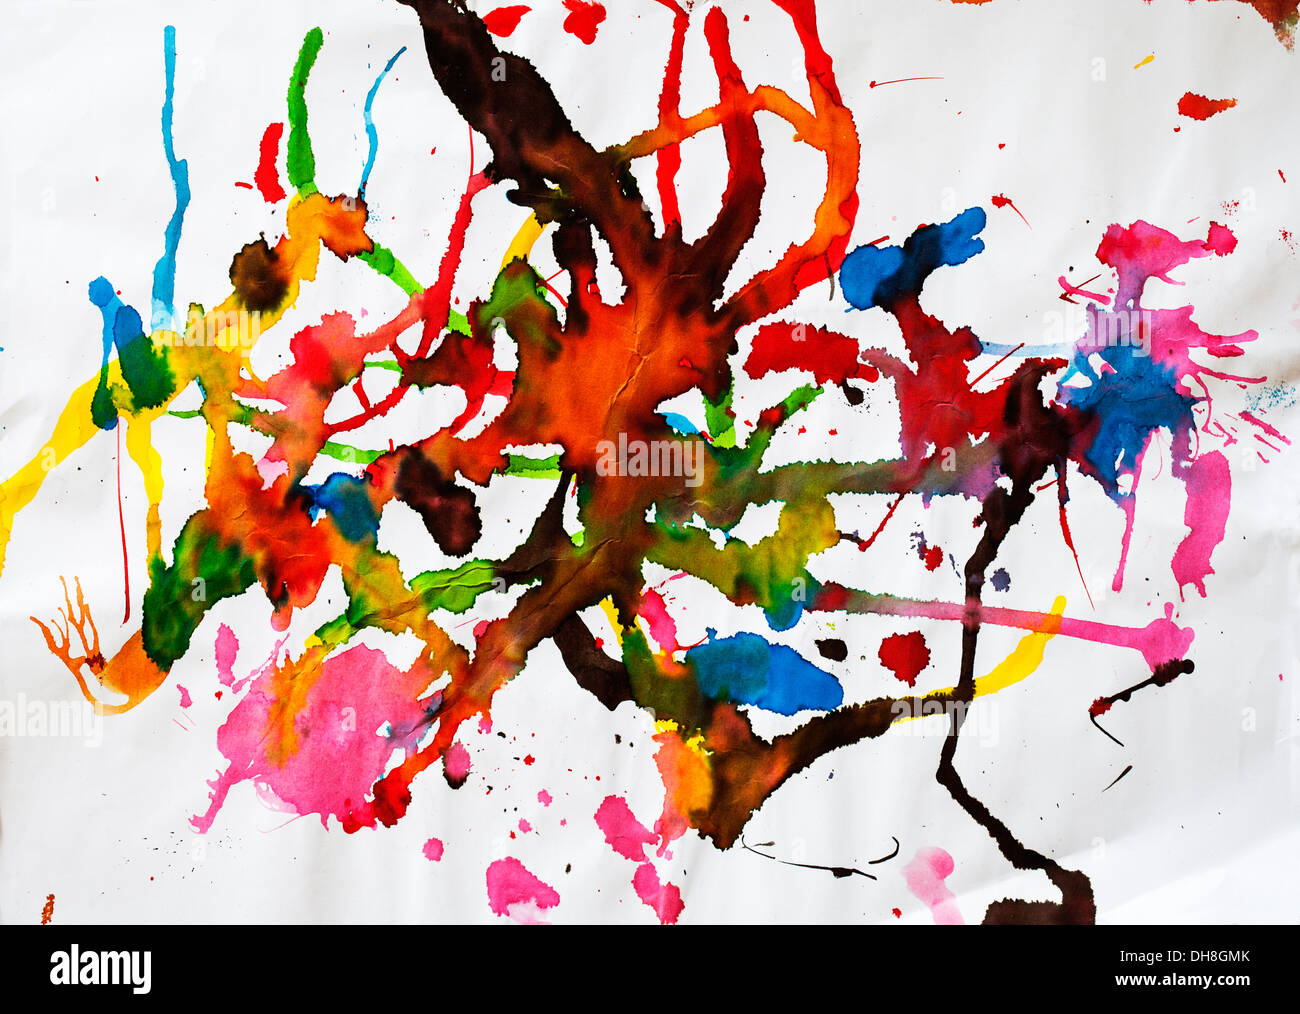 Childrens' artwork: watercolour abstract - Stock Image